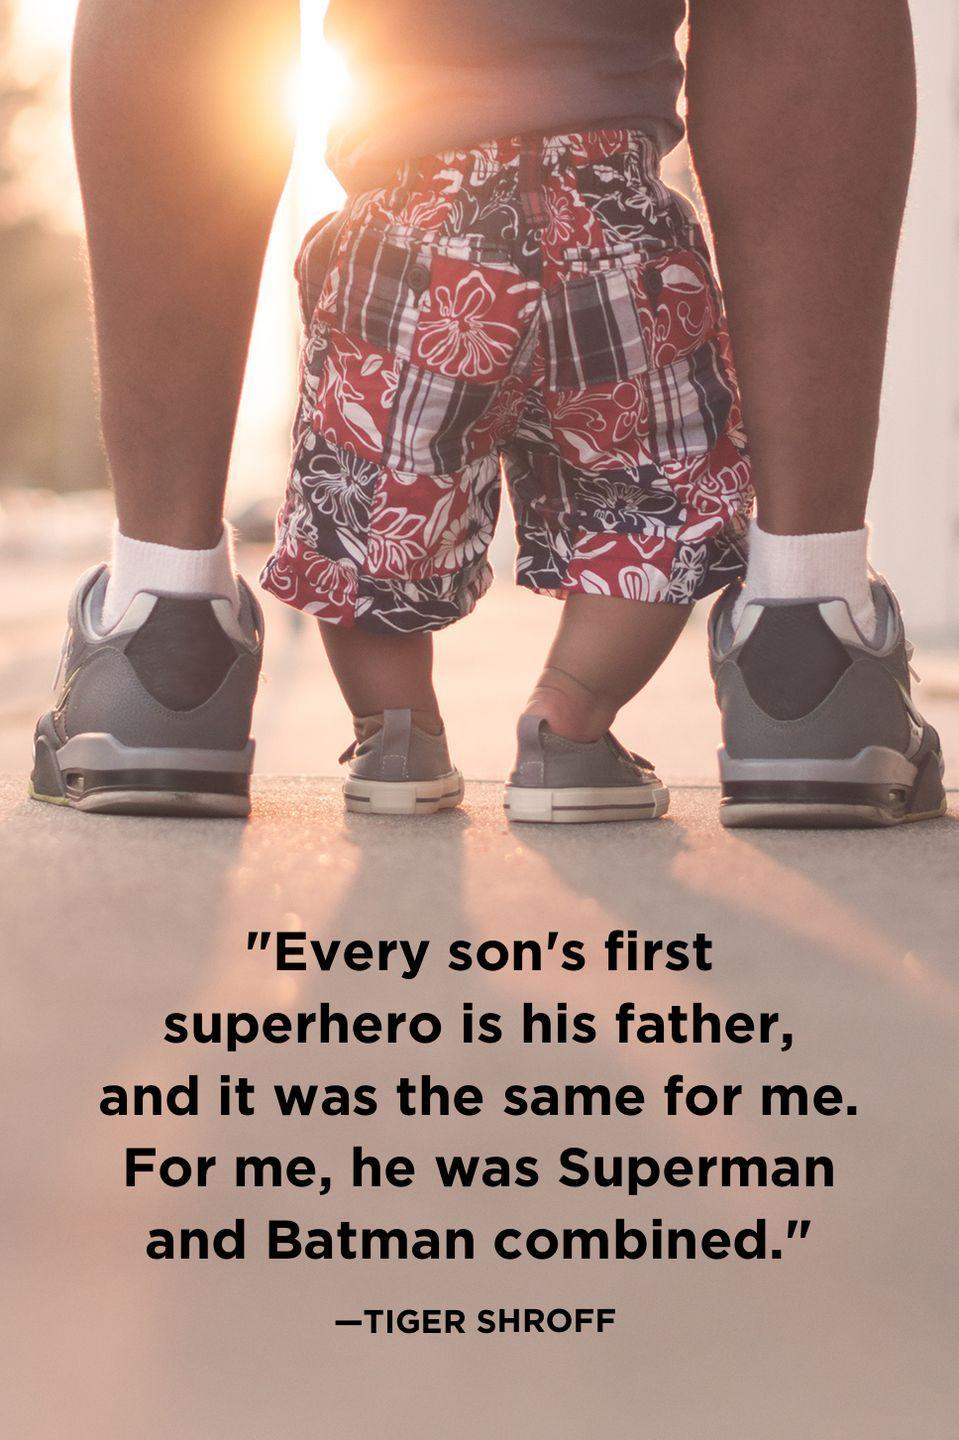 """<p>""""Every son's first superhero is his father, and it was the same for me. For me, he was Superman and Batman combined.""""</p>"""